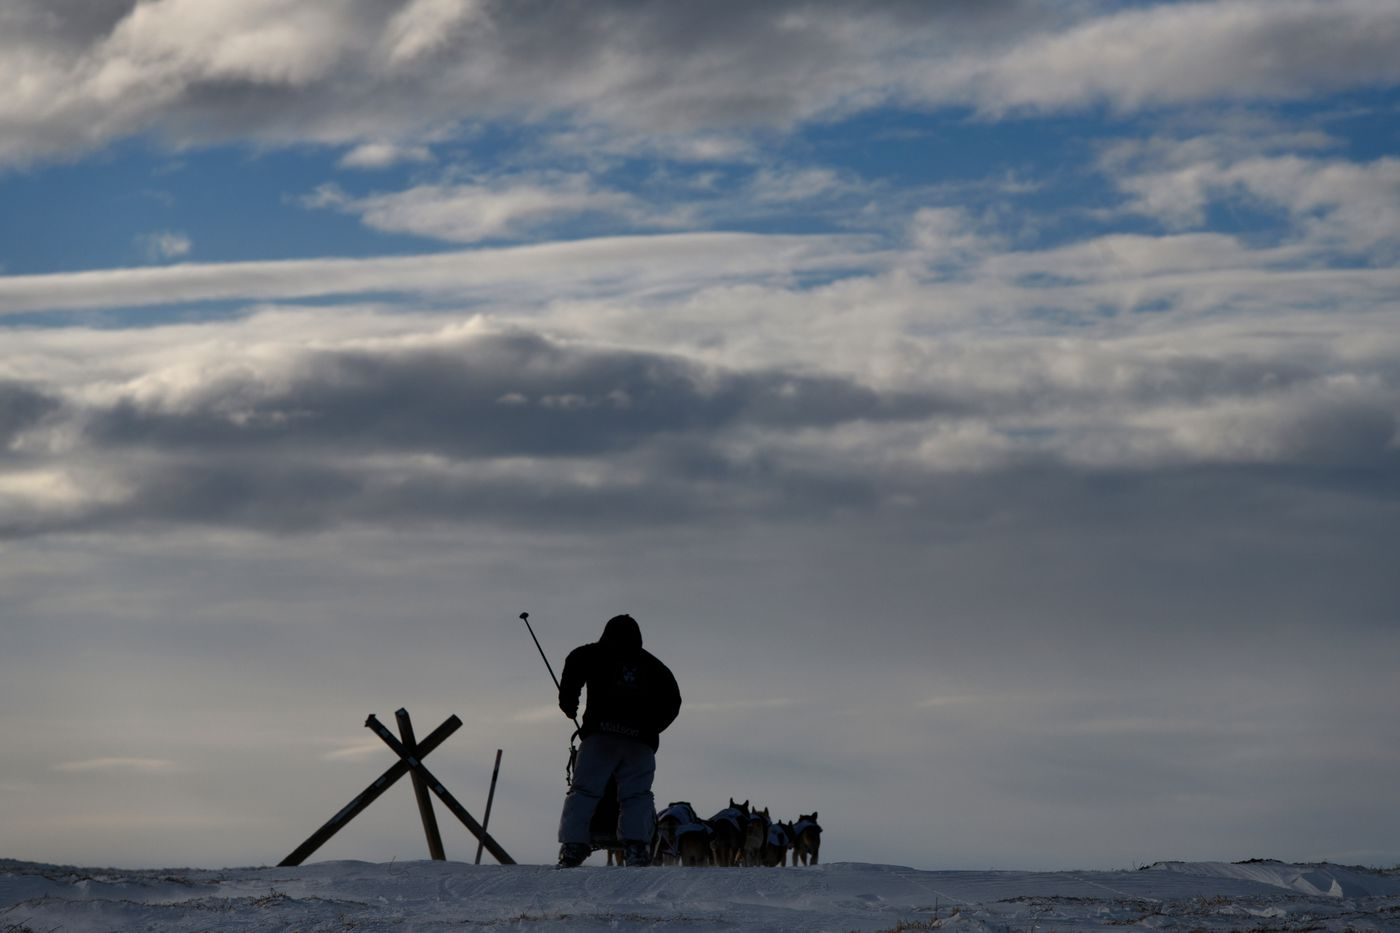 Allen Moore passes Eagle Summit and begins the descent toward the Mile 101 checkpoint of the Yukon Quest International Sled Dog Race on February 10, 2019. (Marc Lester / ADN archive)